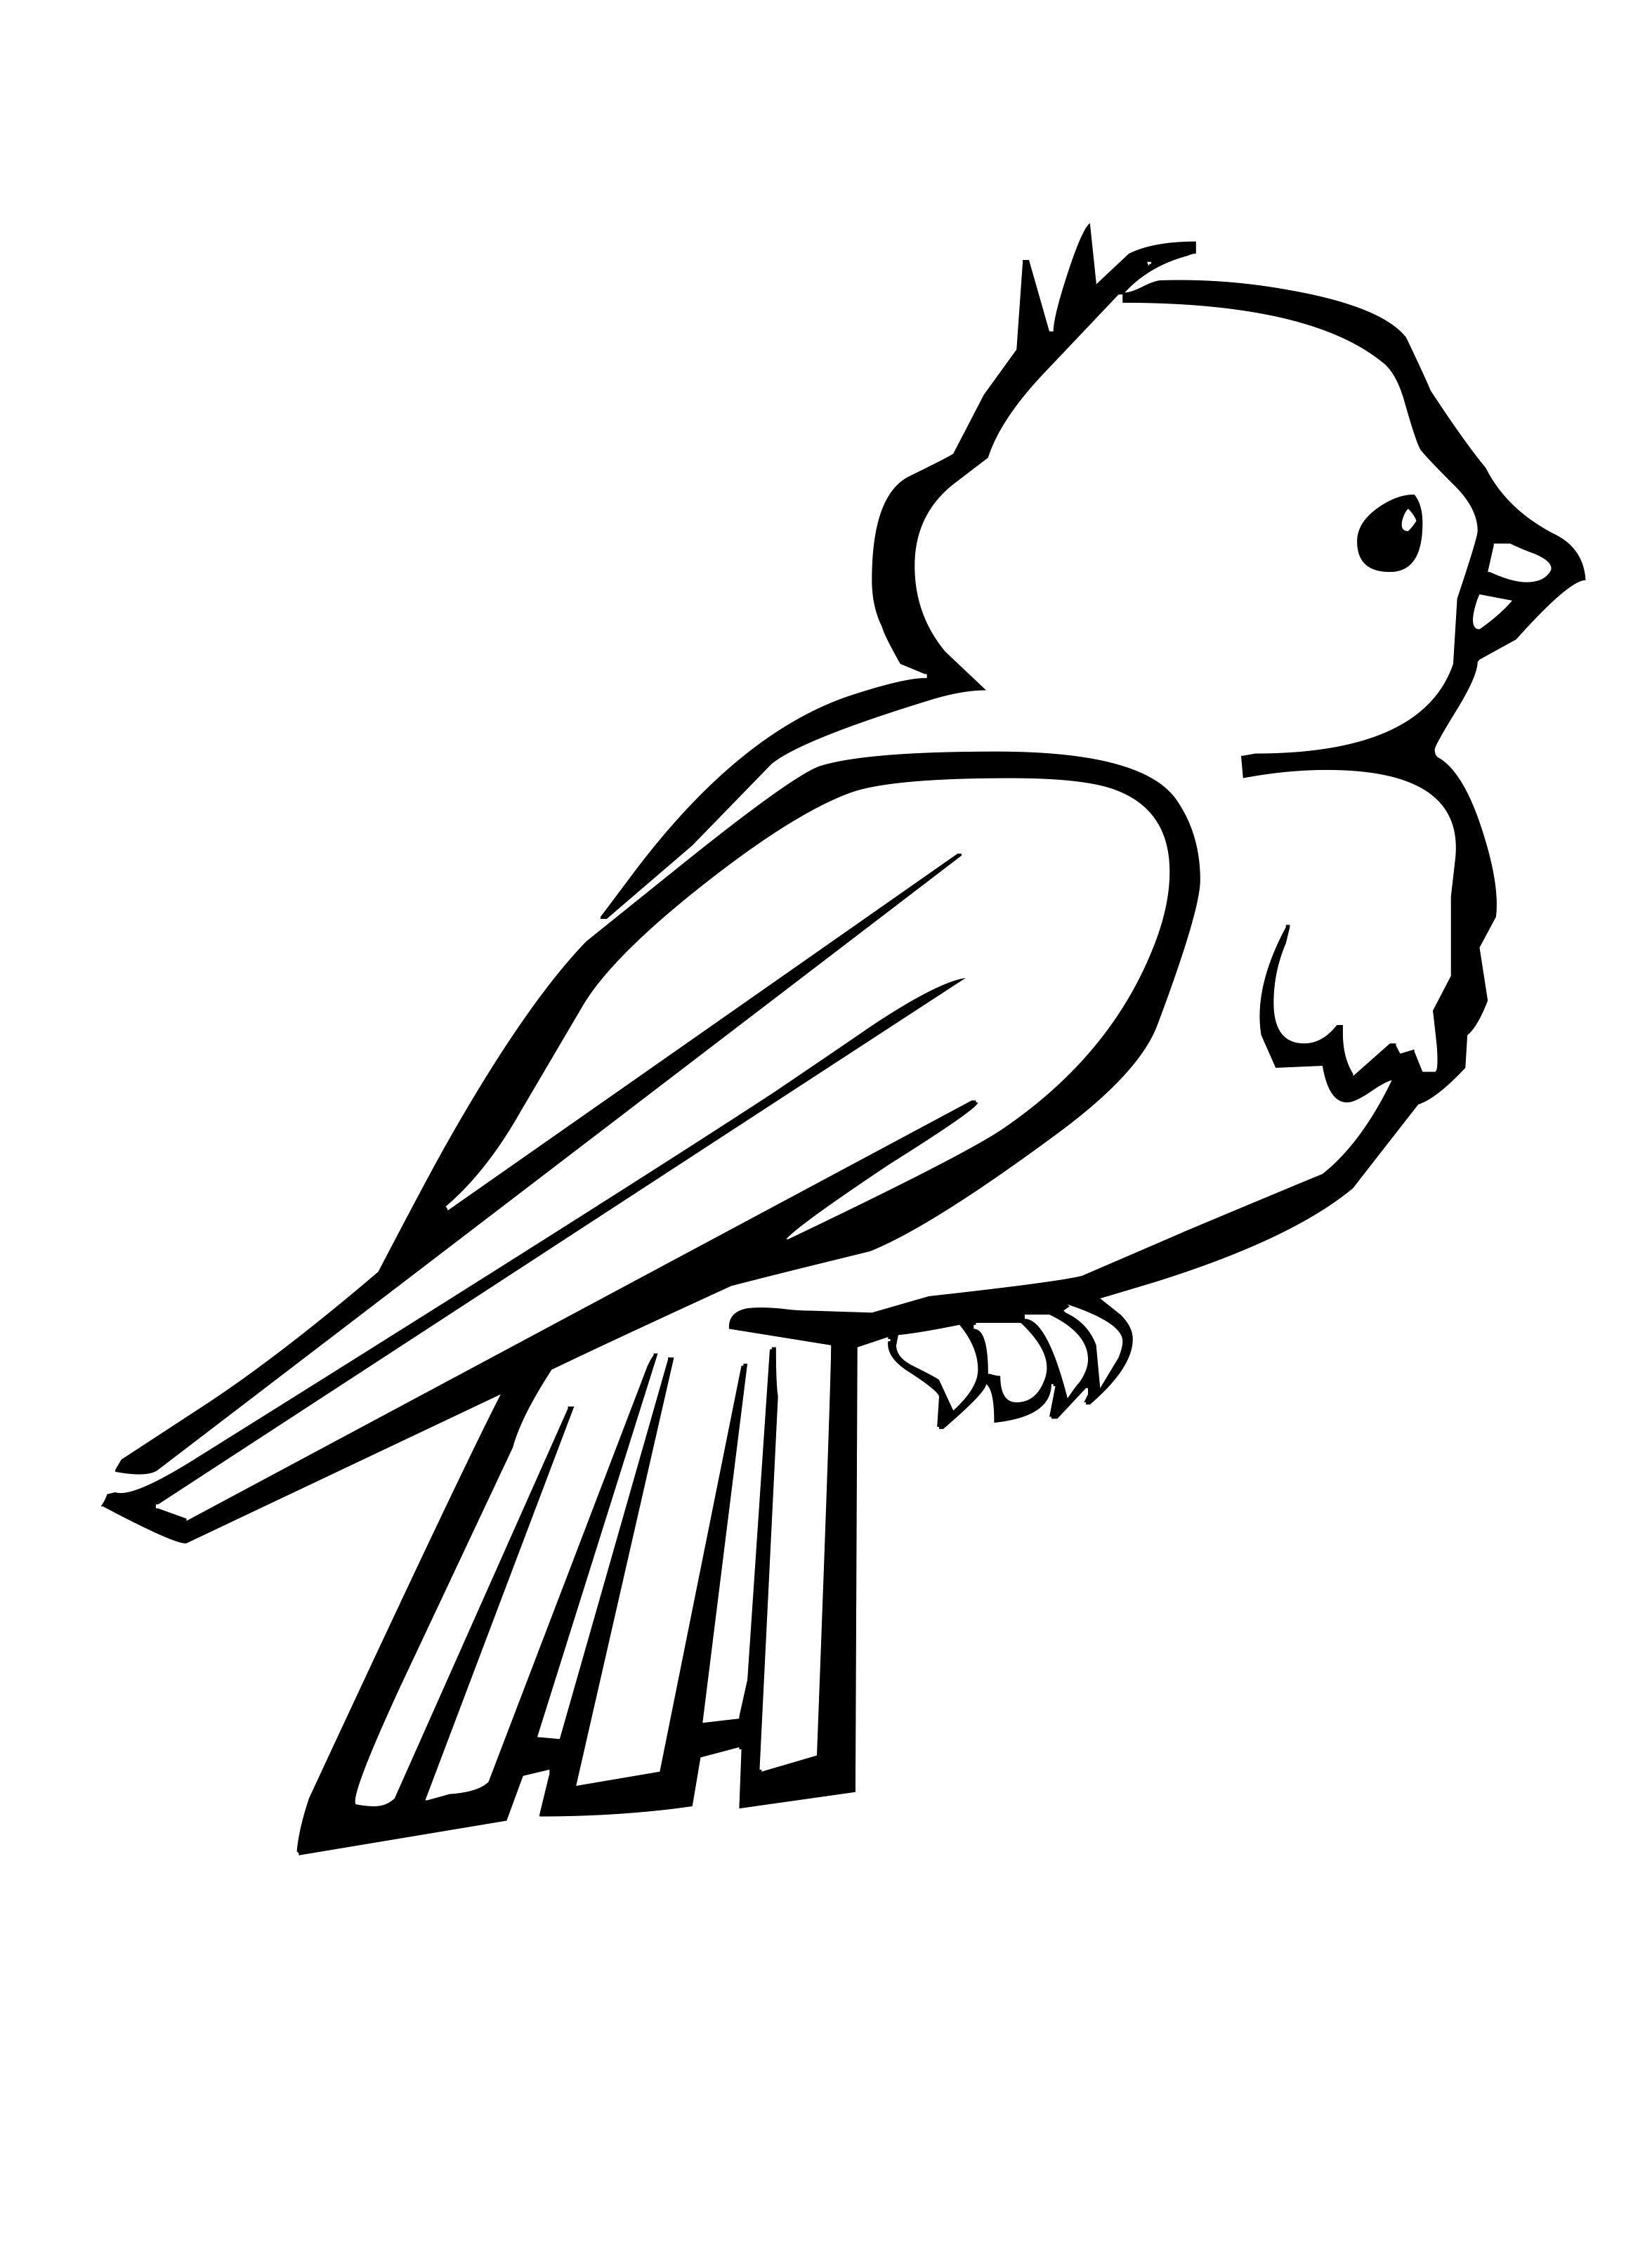 Small Birds Are Cute And Attractive Coloring Pages With Images